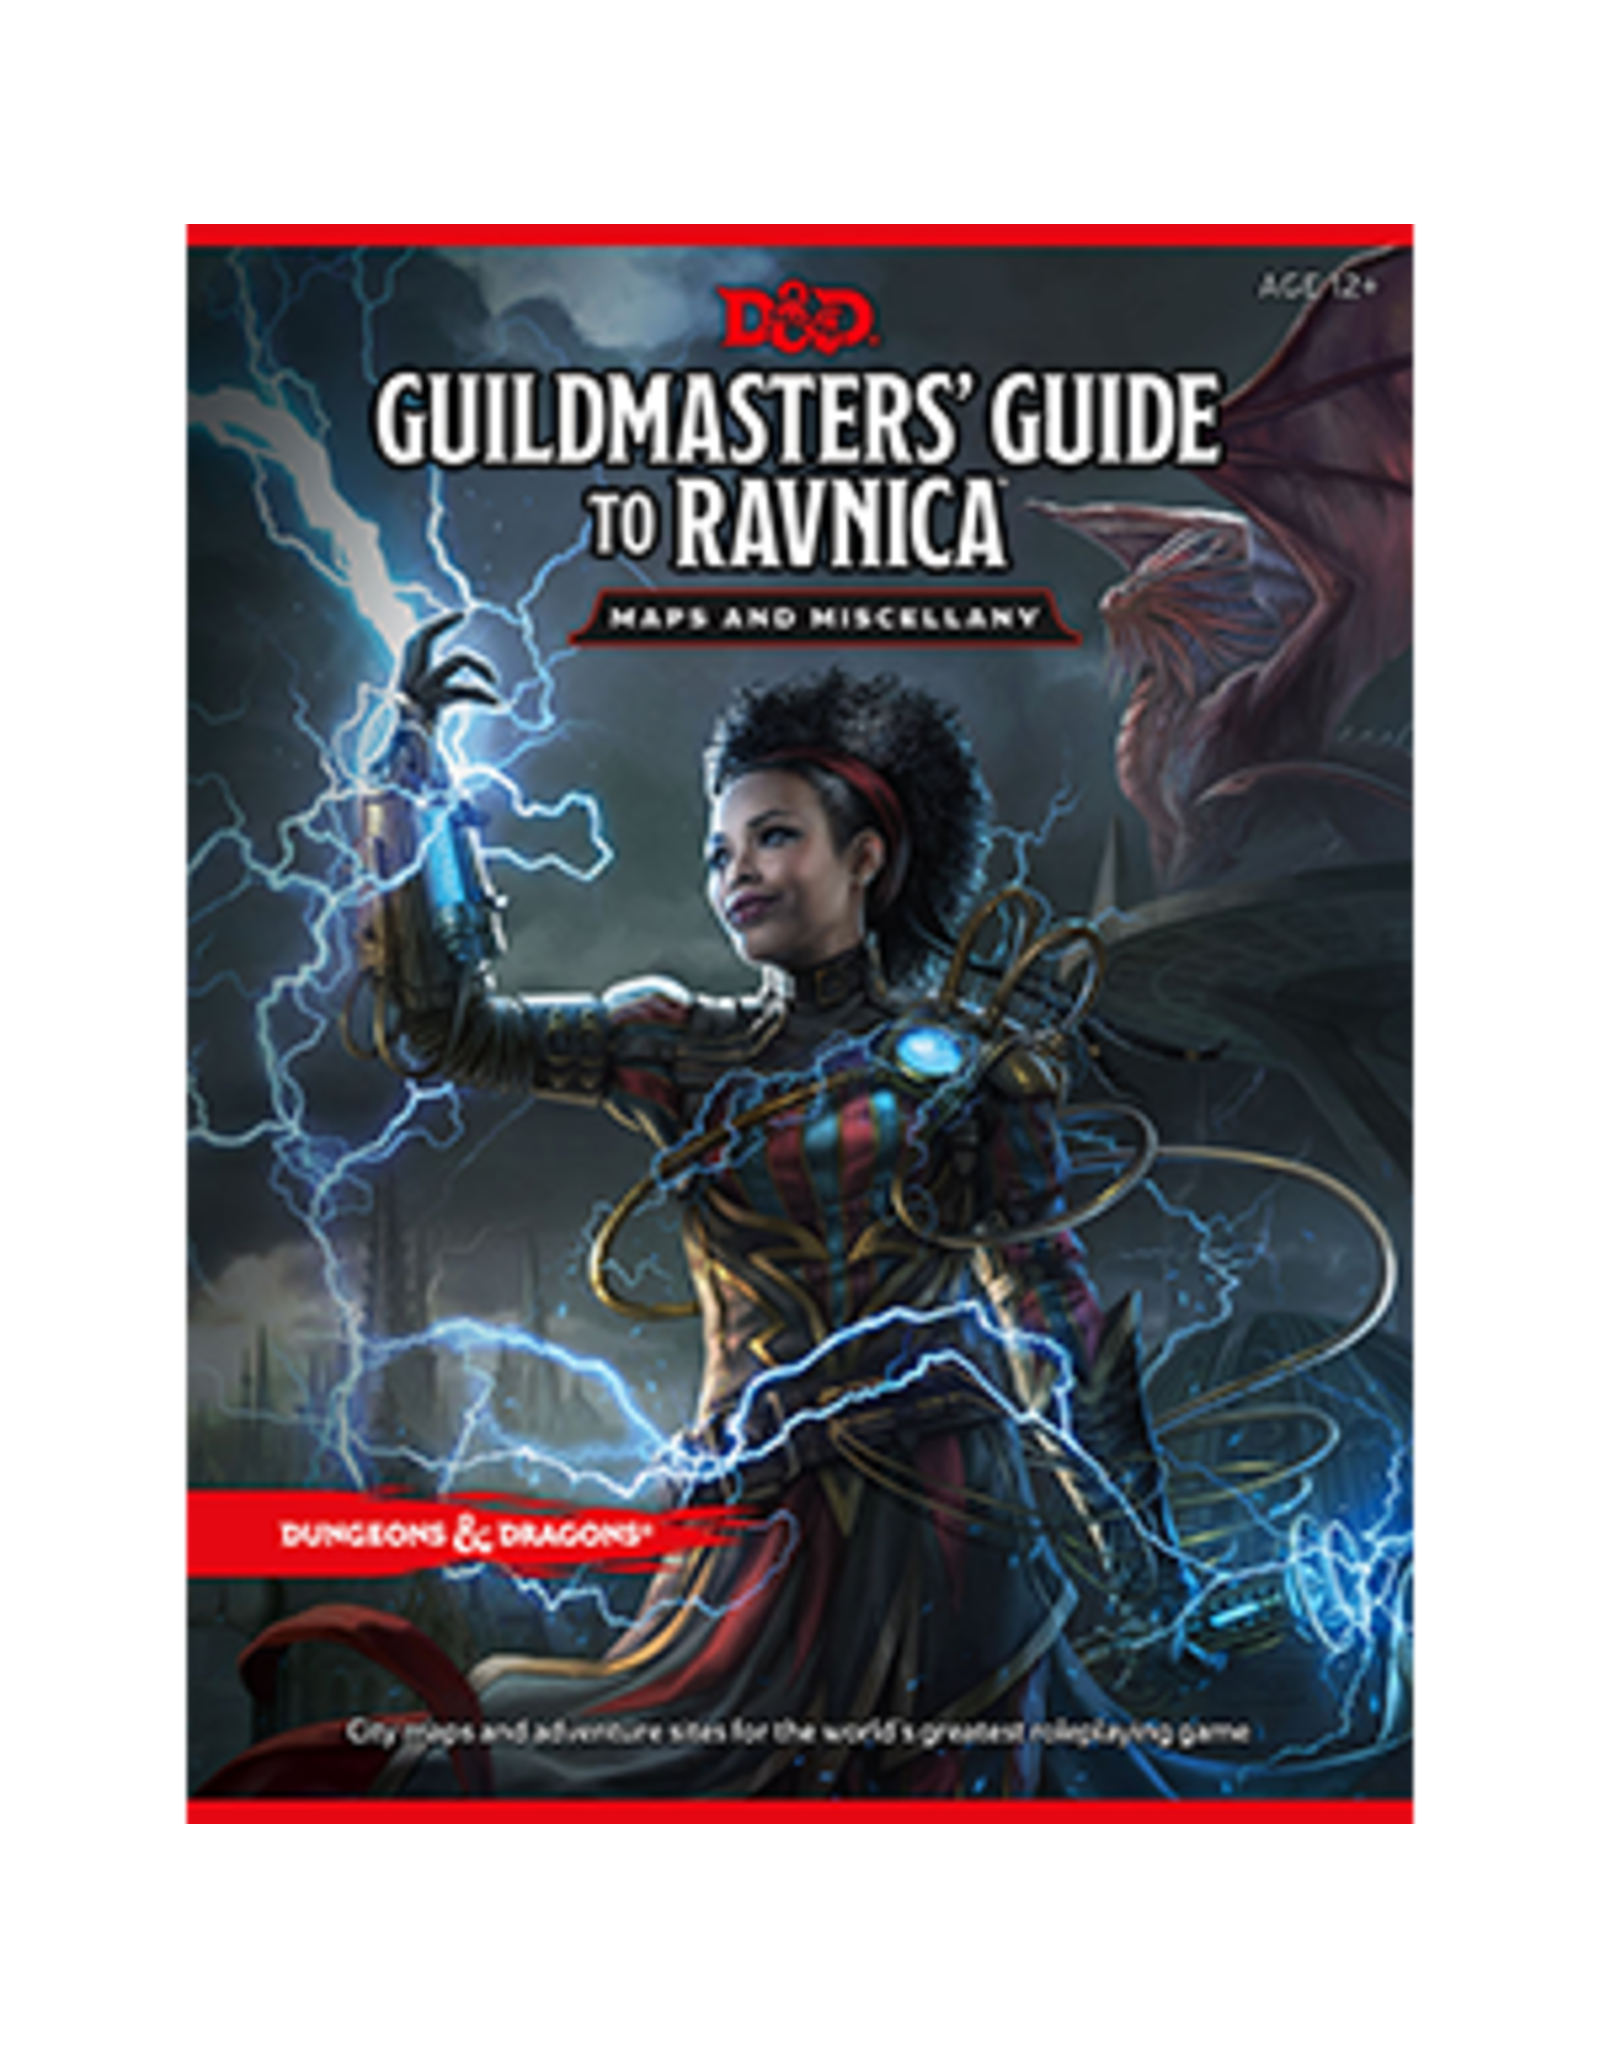 D&D: Guildmasters Guide to Ravnica Map Pk